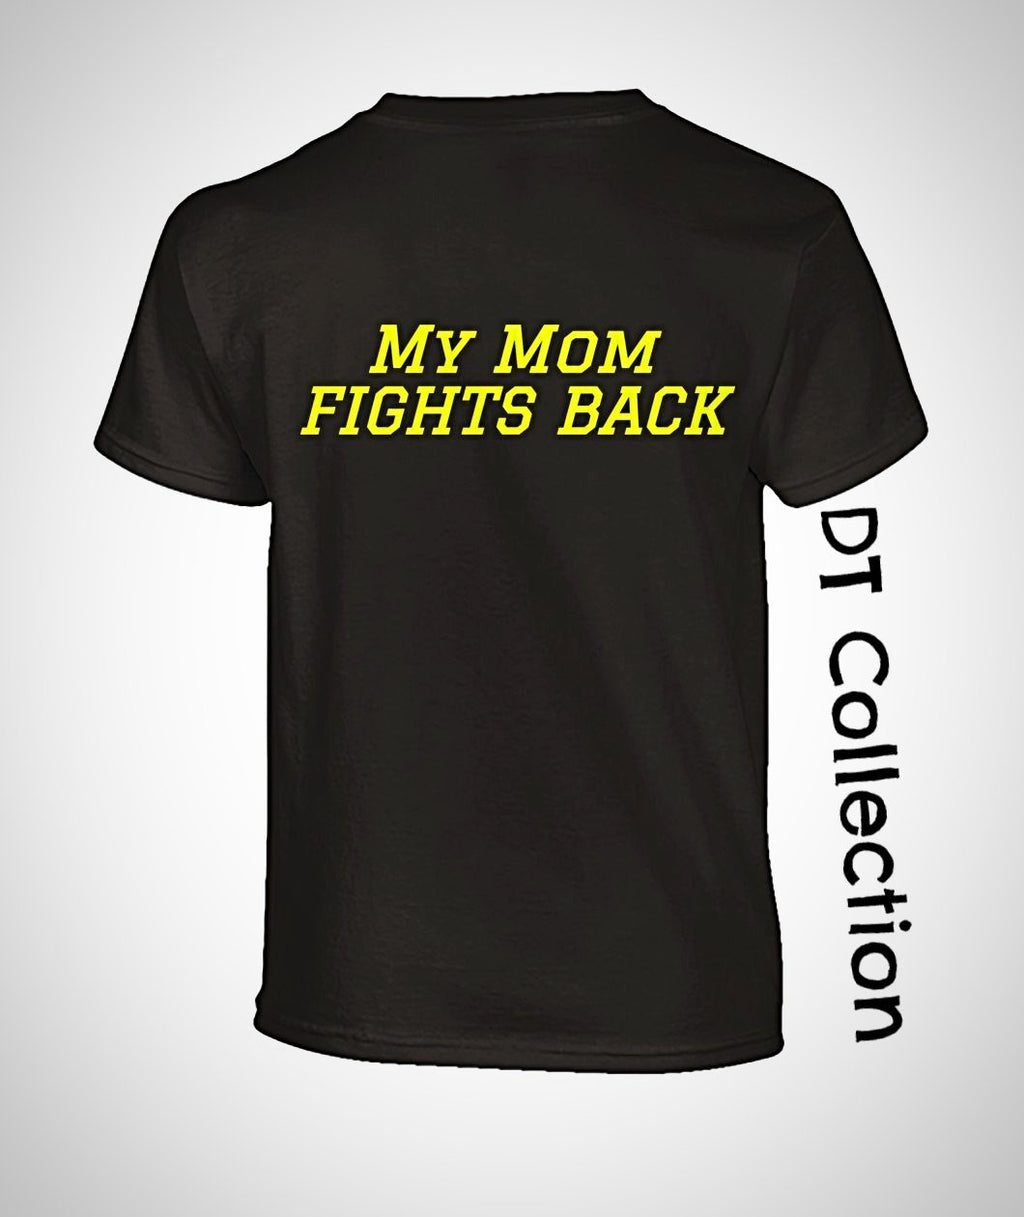 #strongwomen FIGHT BACK Kids T-Shirt